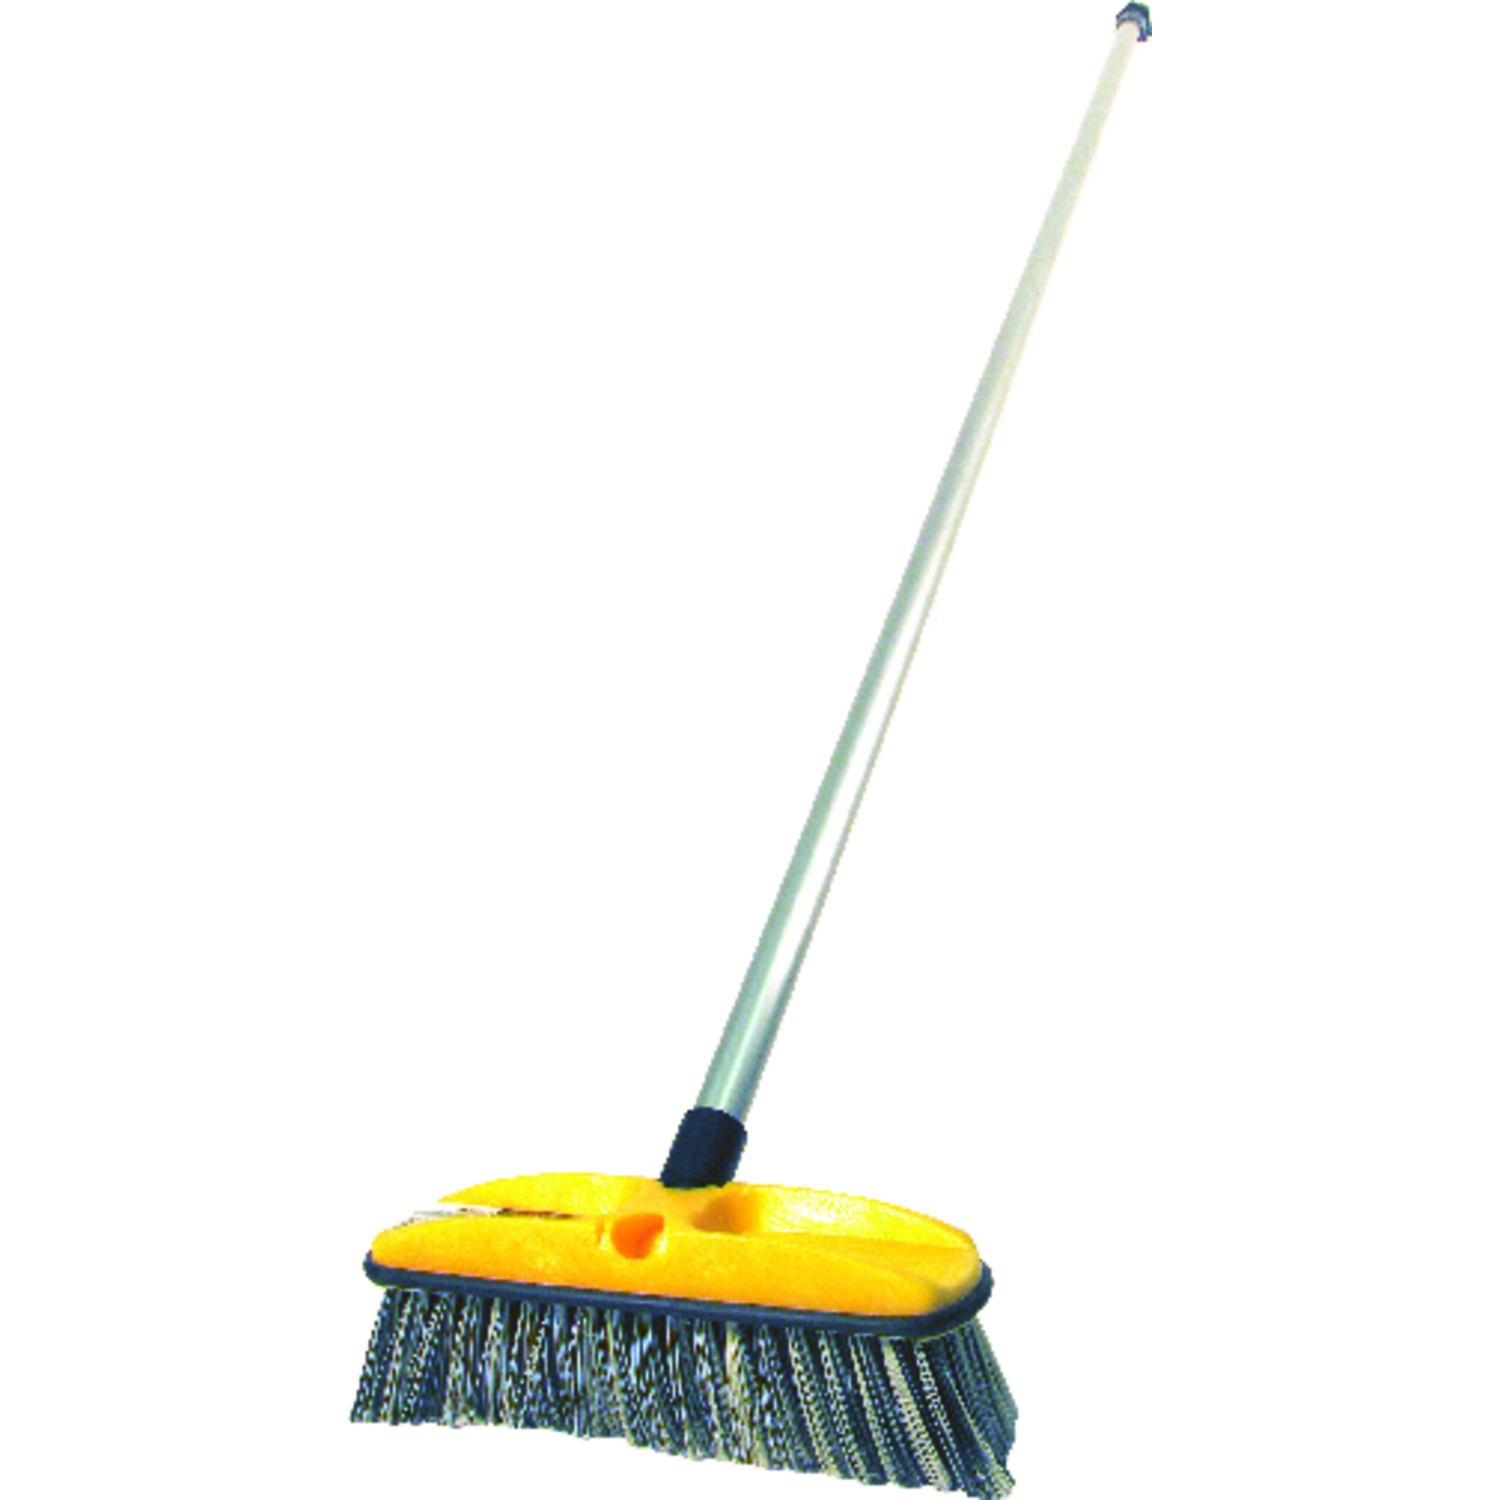 Rubbermaid 18.88 in. W Plastic Siding Brush with Handle - Ace Hardware